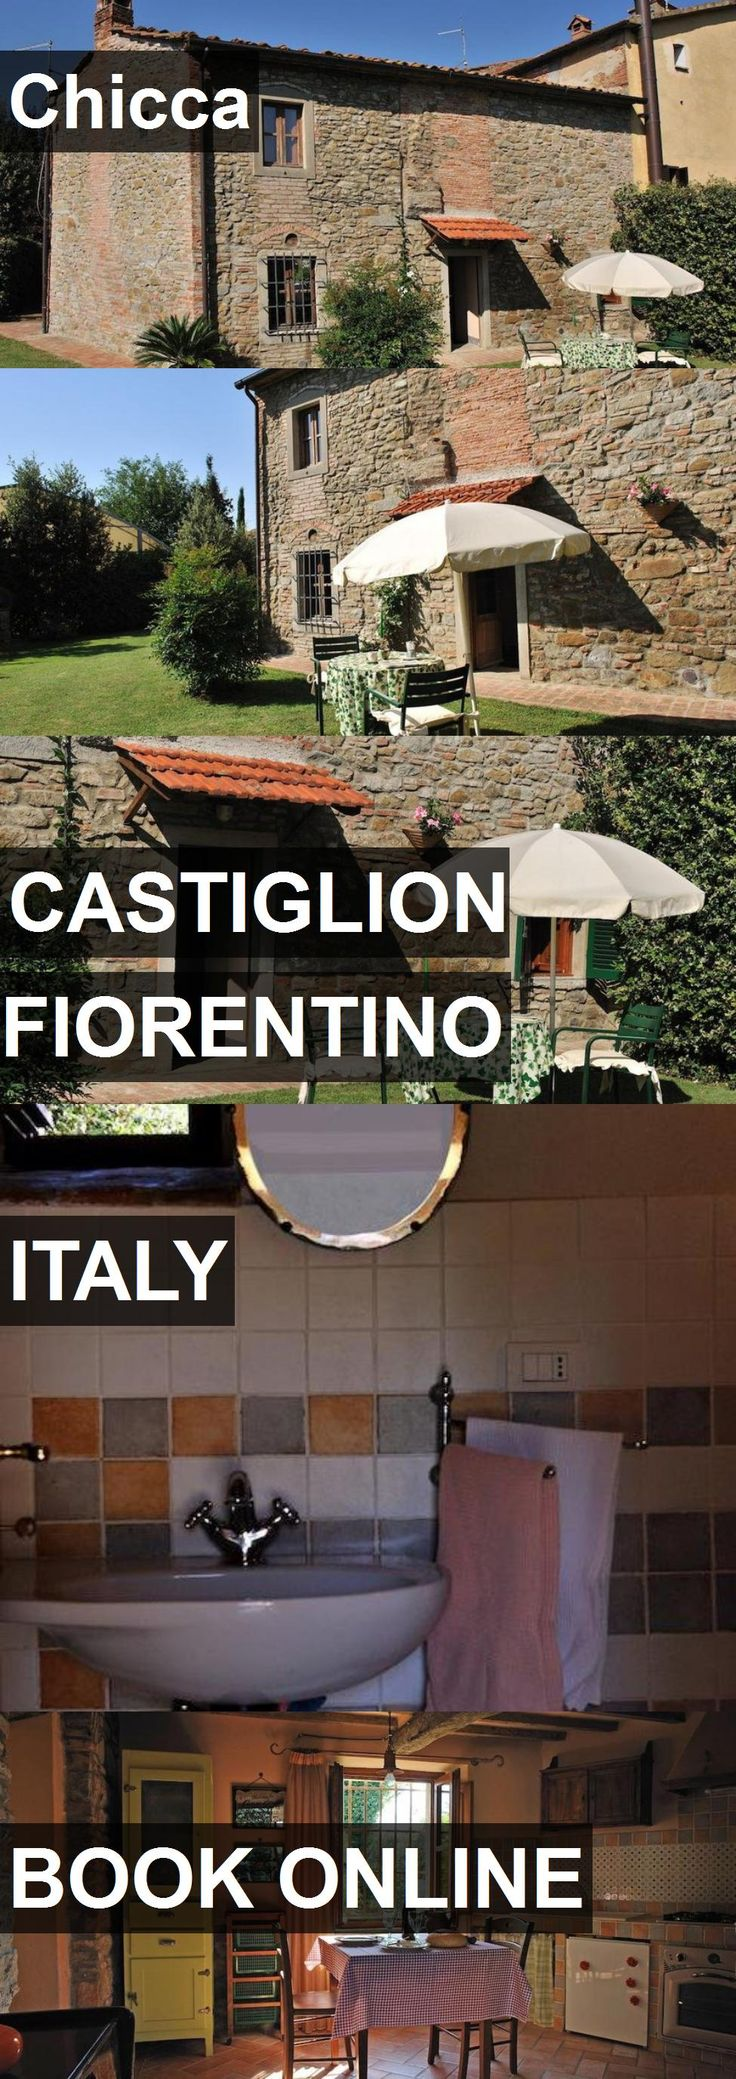 Hotel Chicca in Castiglion Fiorentino, Italy. For more information, photos, reviews and best prices please follow the link. #Italy #CastiglionFiorentino #travel #vacation #hotel